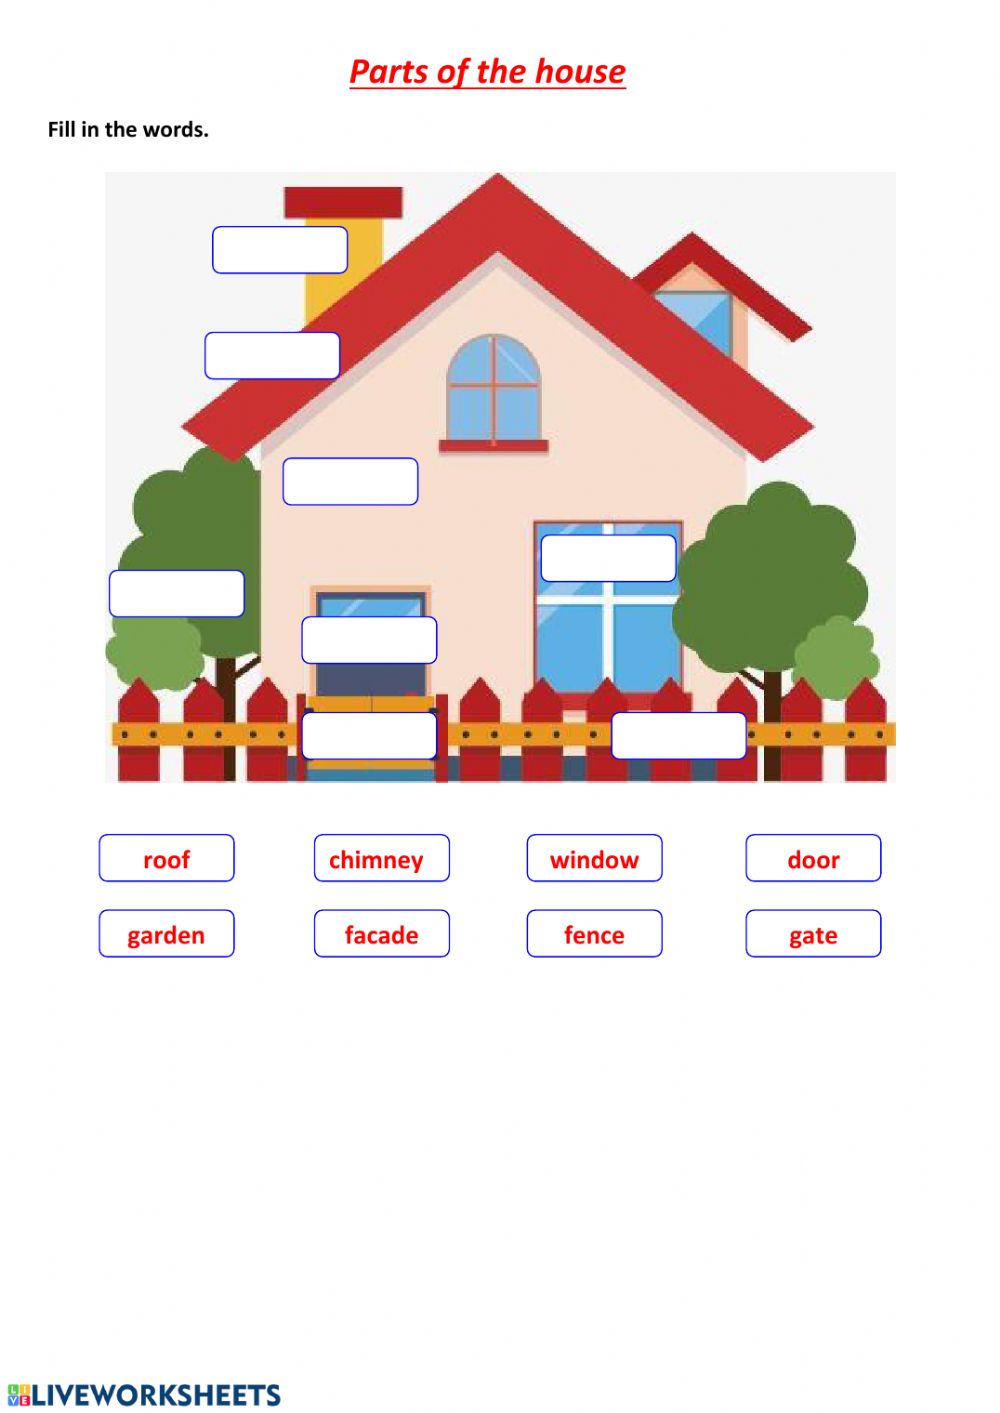 Parts Of The House Exercise For Elementary